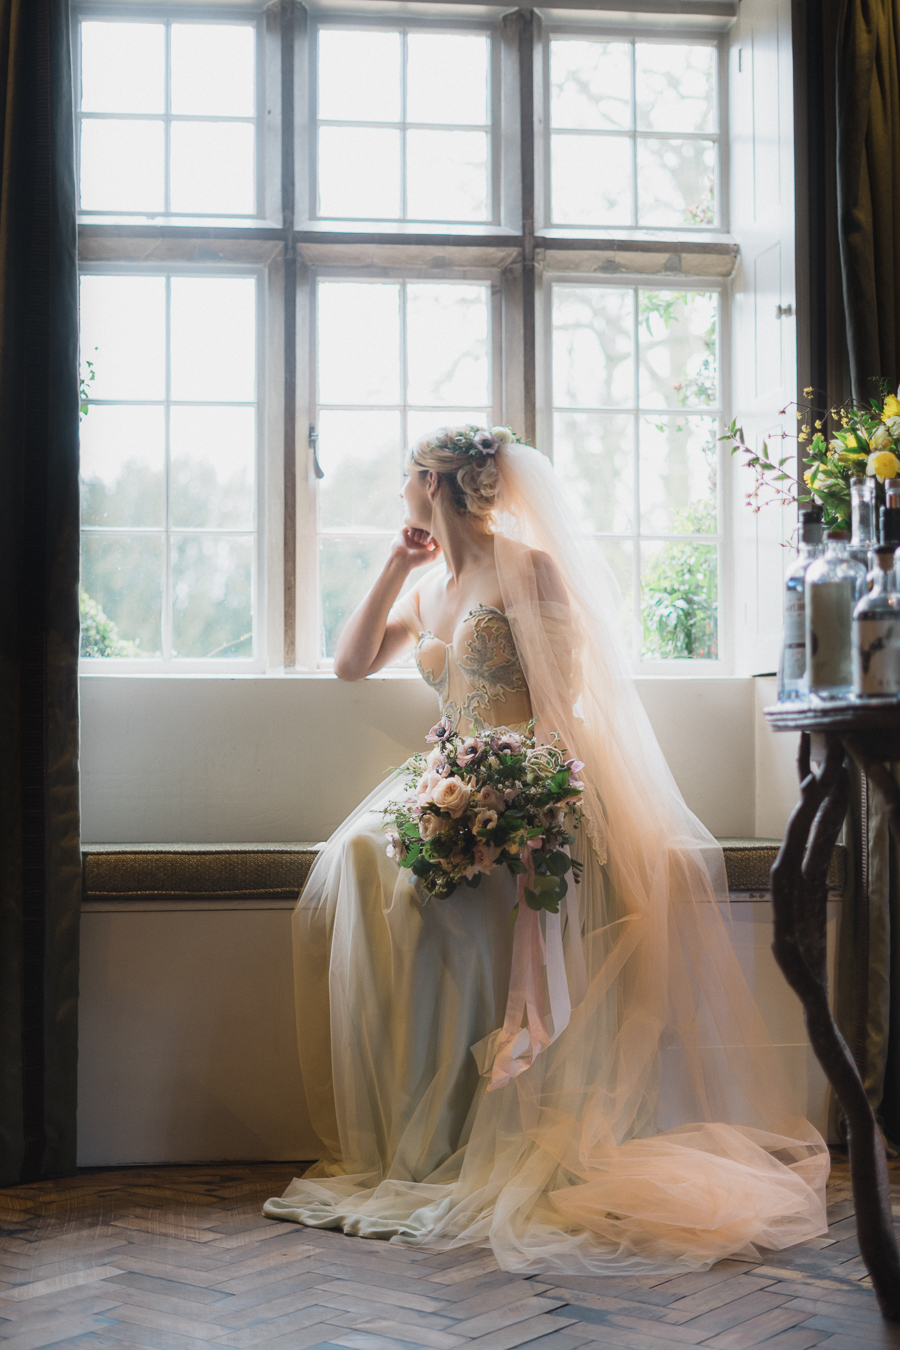 Candyfloss romance from the secret garden at Barnsley House, image credit Red Maple Photography (2)